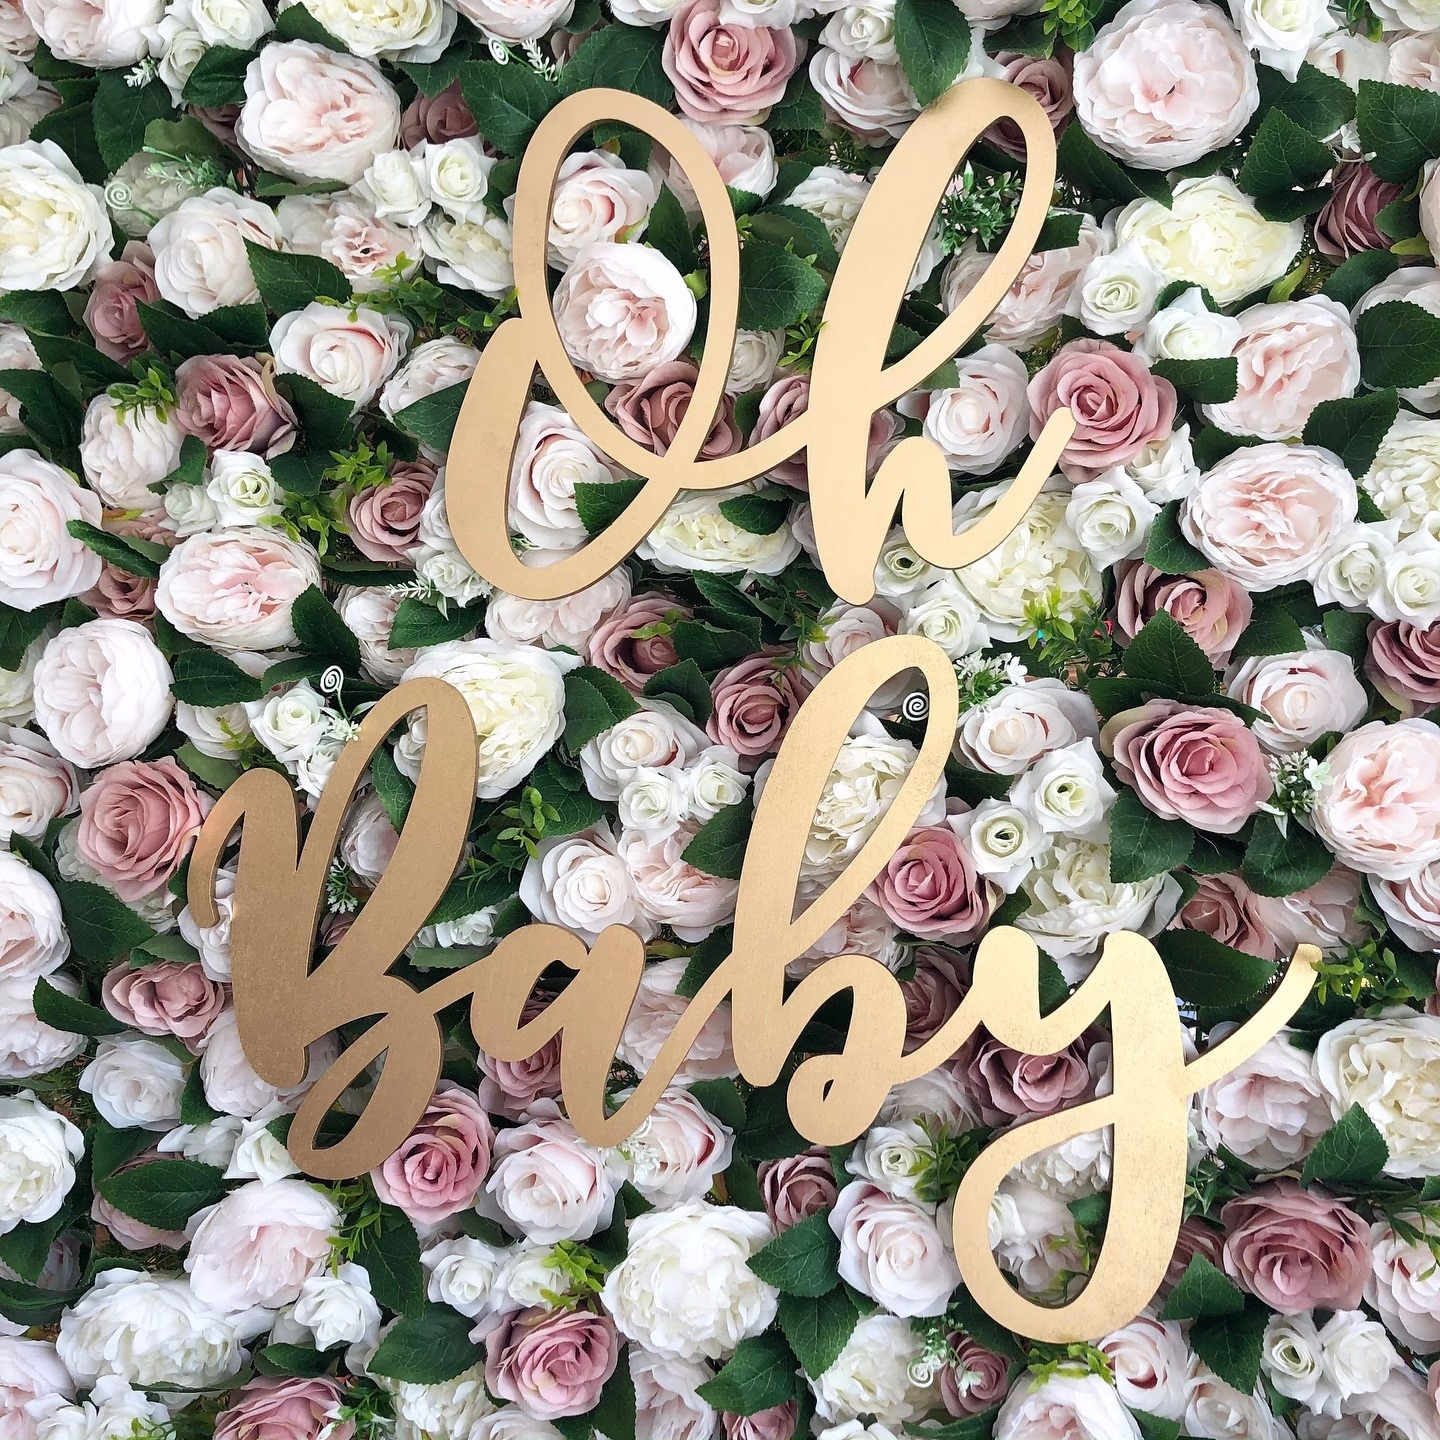 Flower wall sign for baby shower